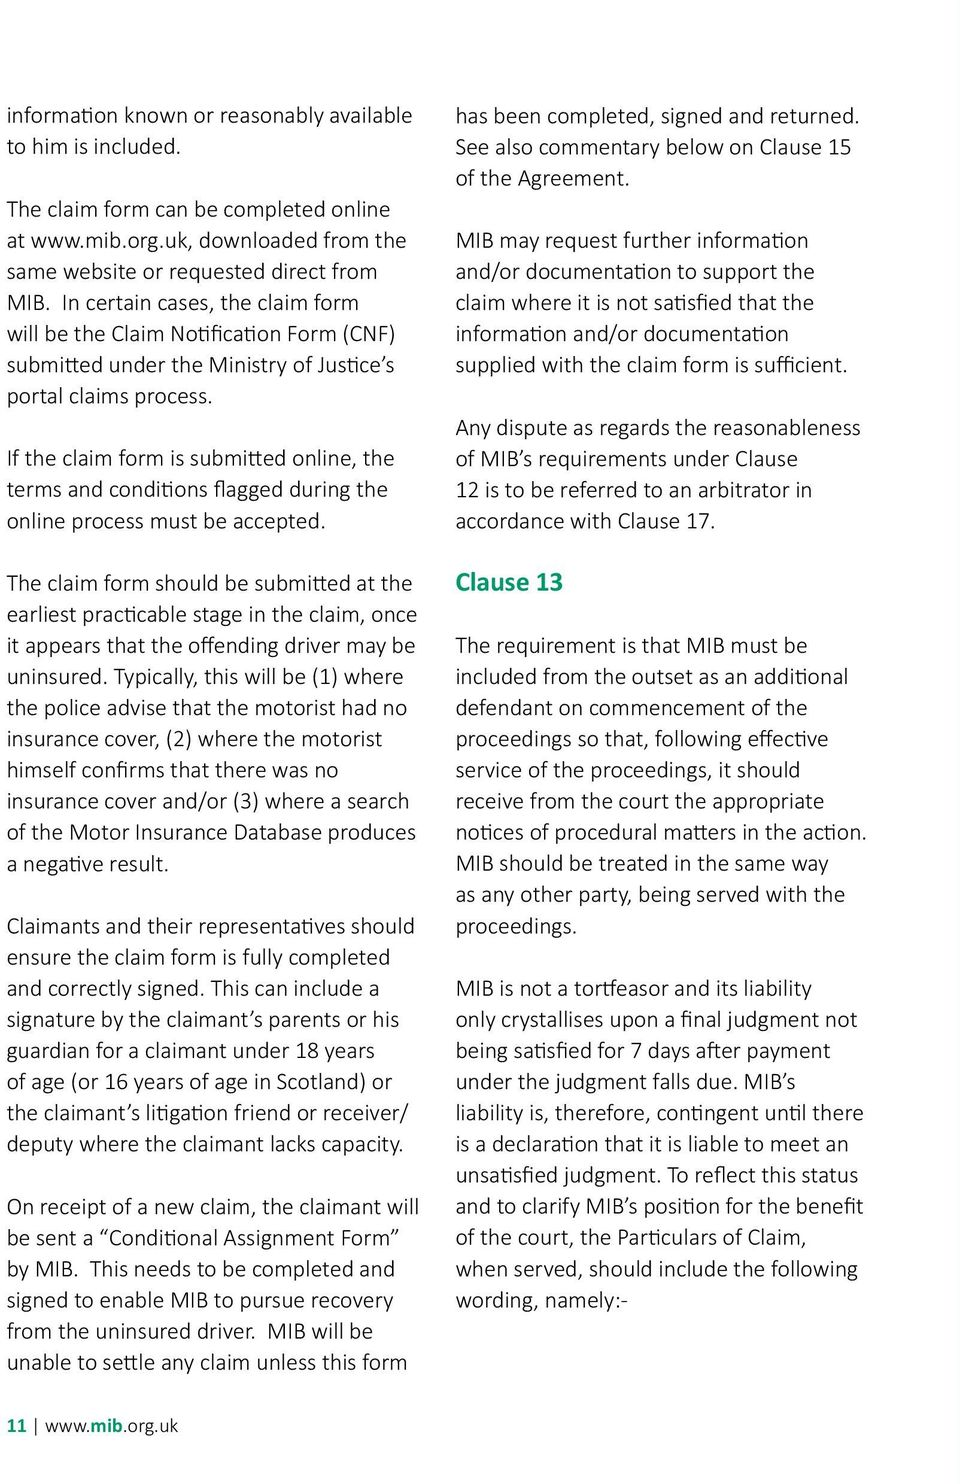 Notes For Guidance Mib Uninsured Agreement 2015 1 Pdf